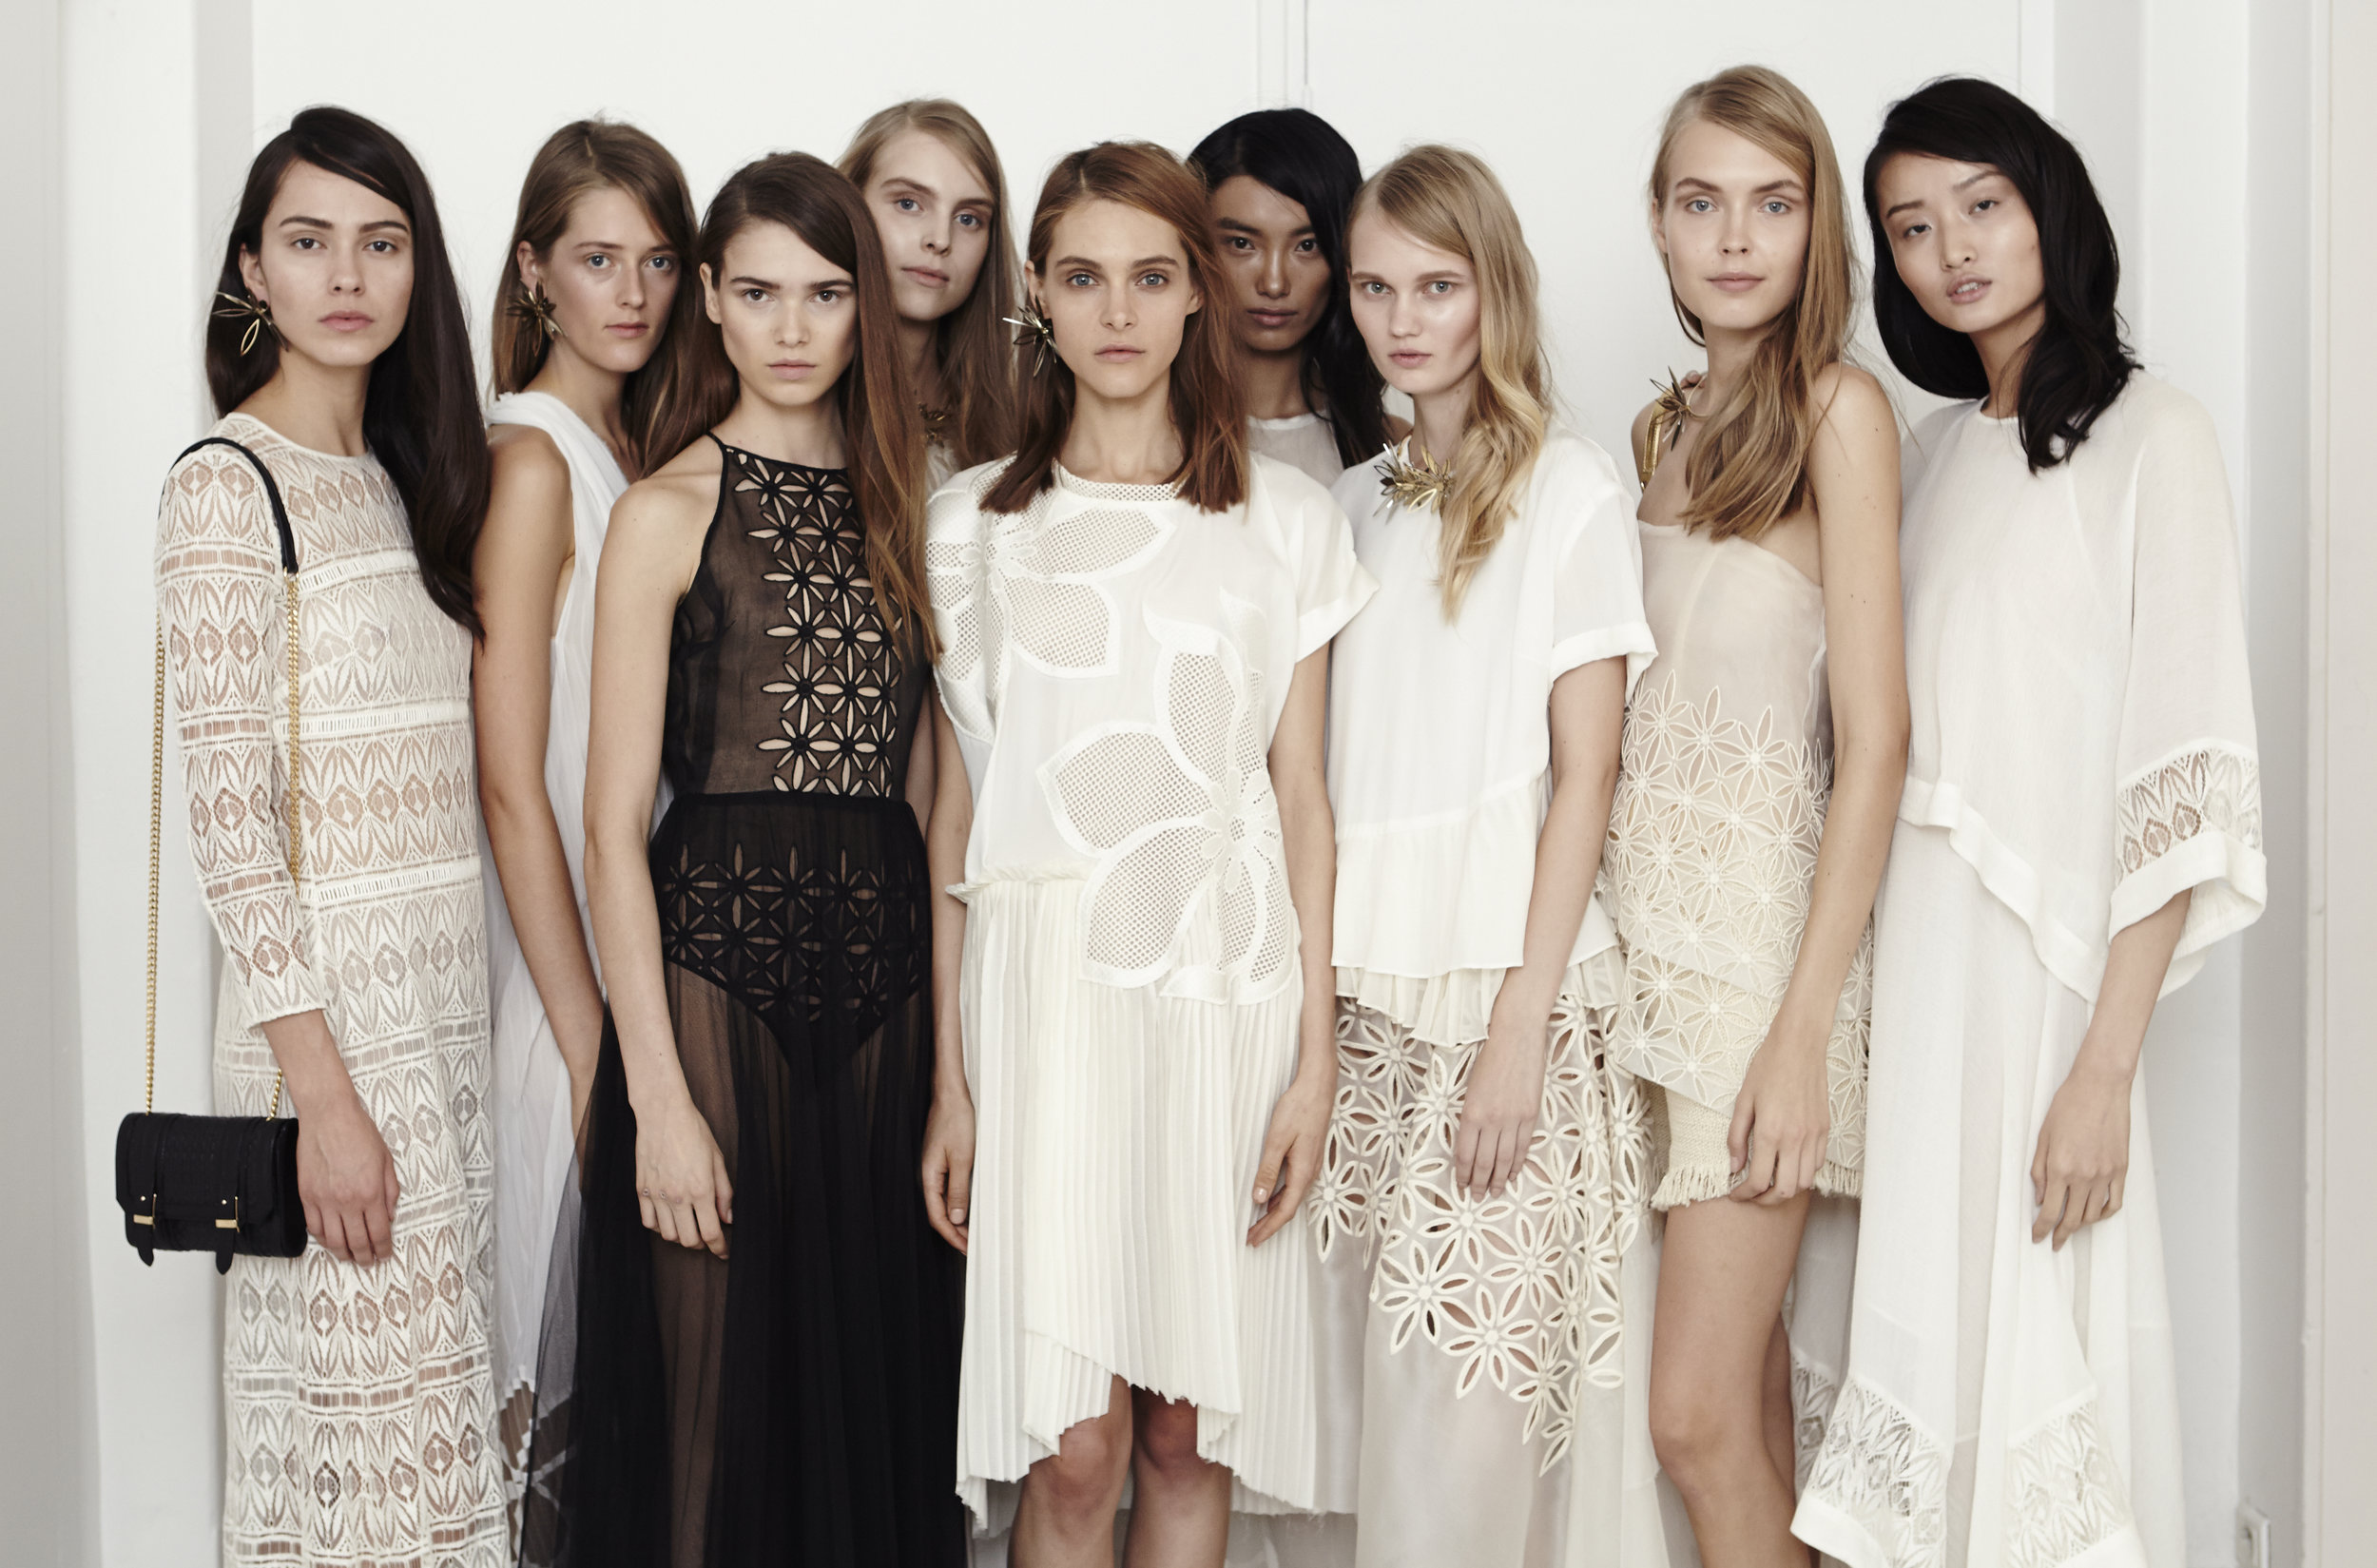 Backstage at the Kaviar Gauche S/S 15 show in Paris © Cathleen Wolf